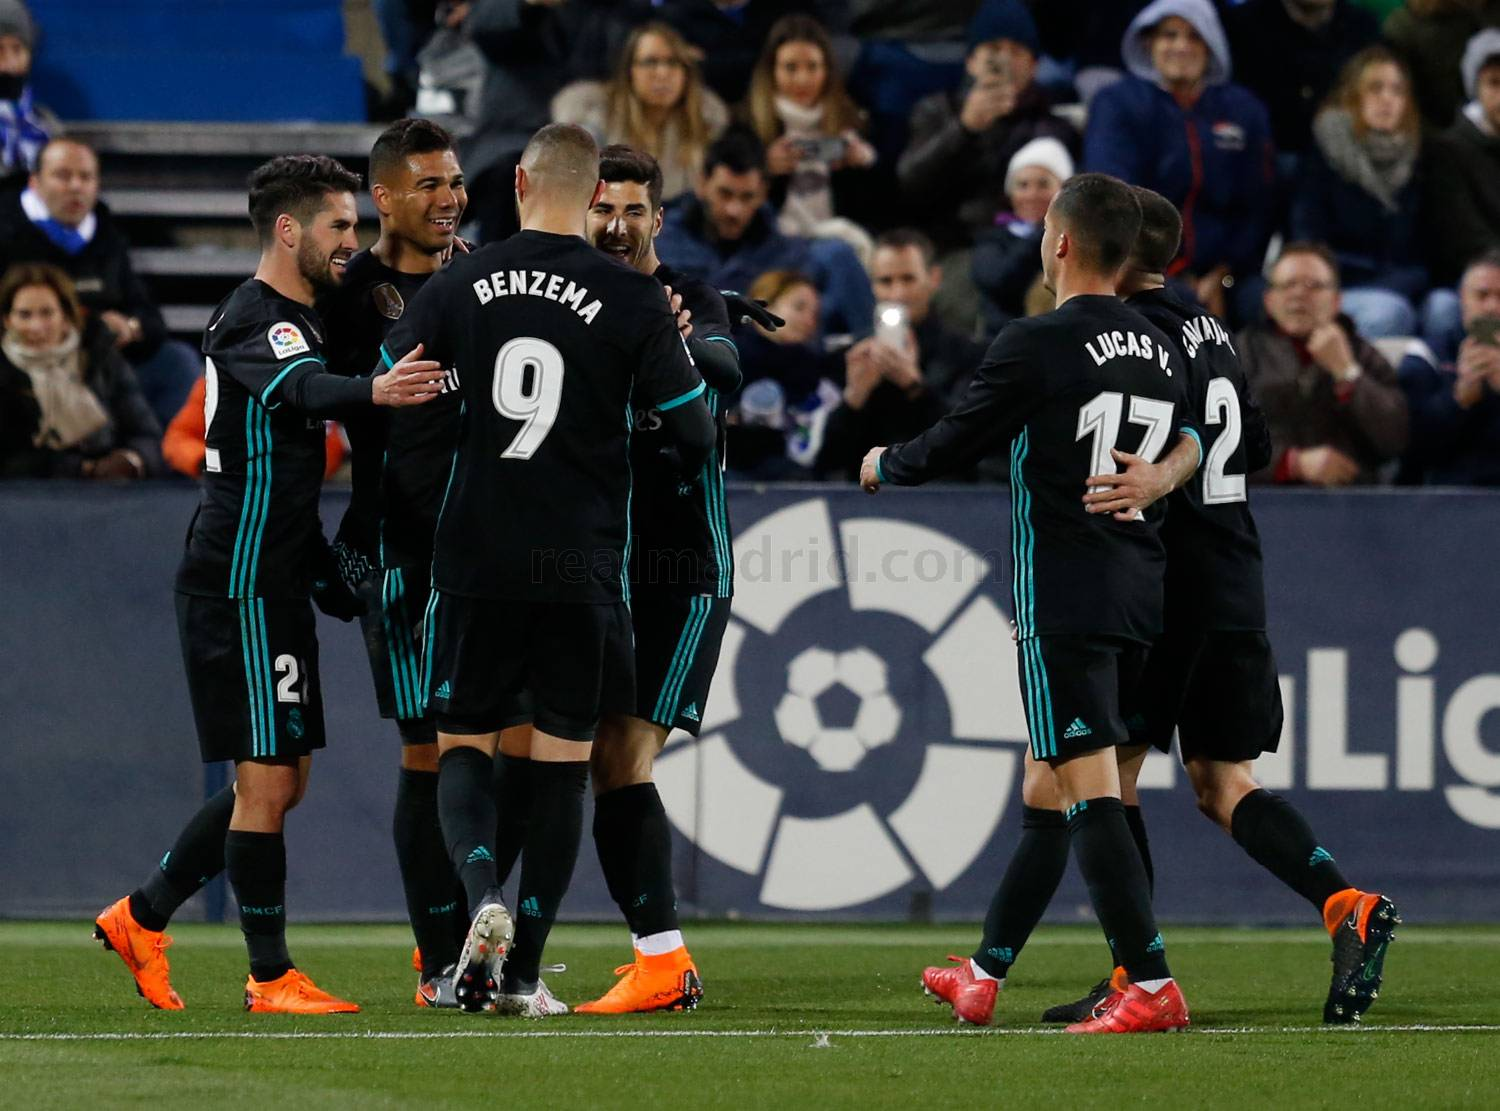 Real Madrid - Leganés - Real Madrid - 21-02-2018